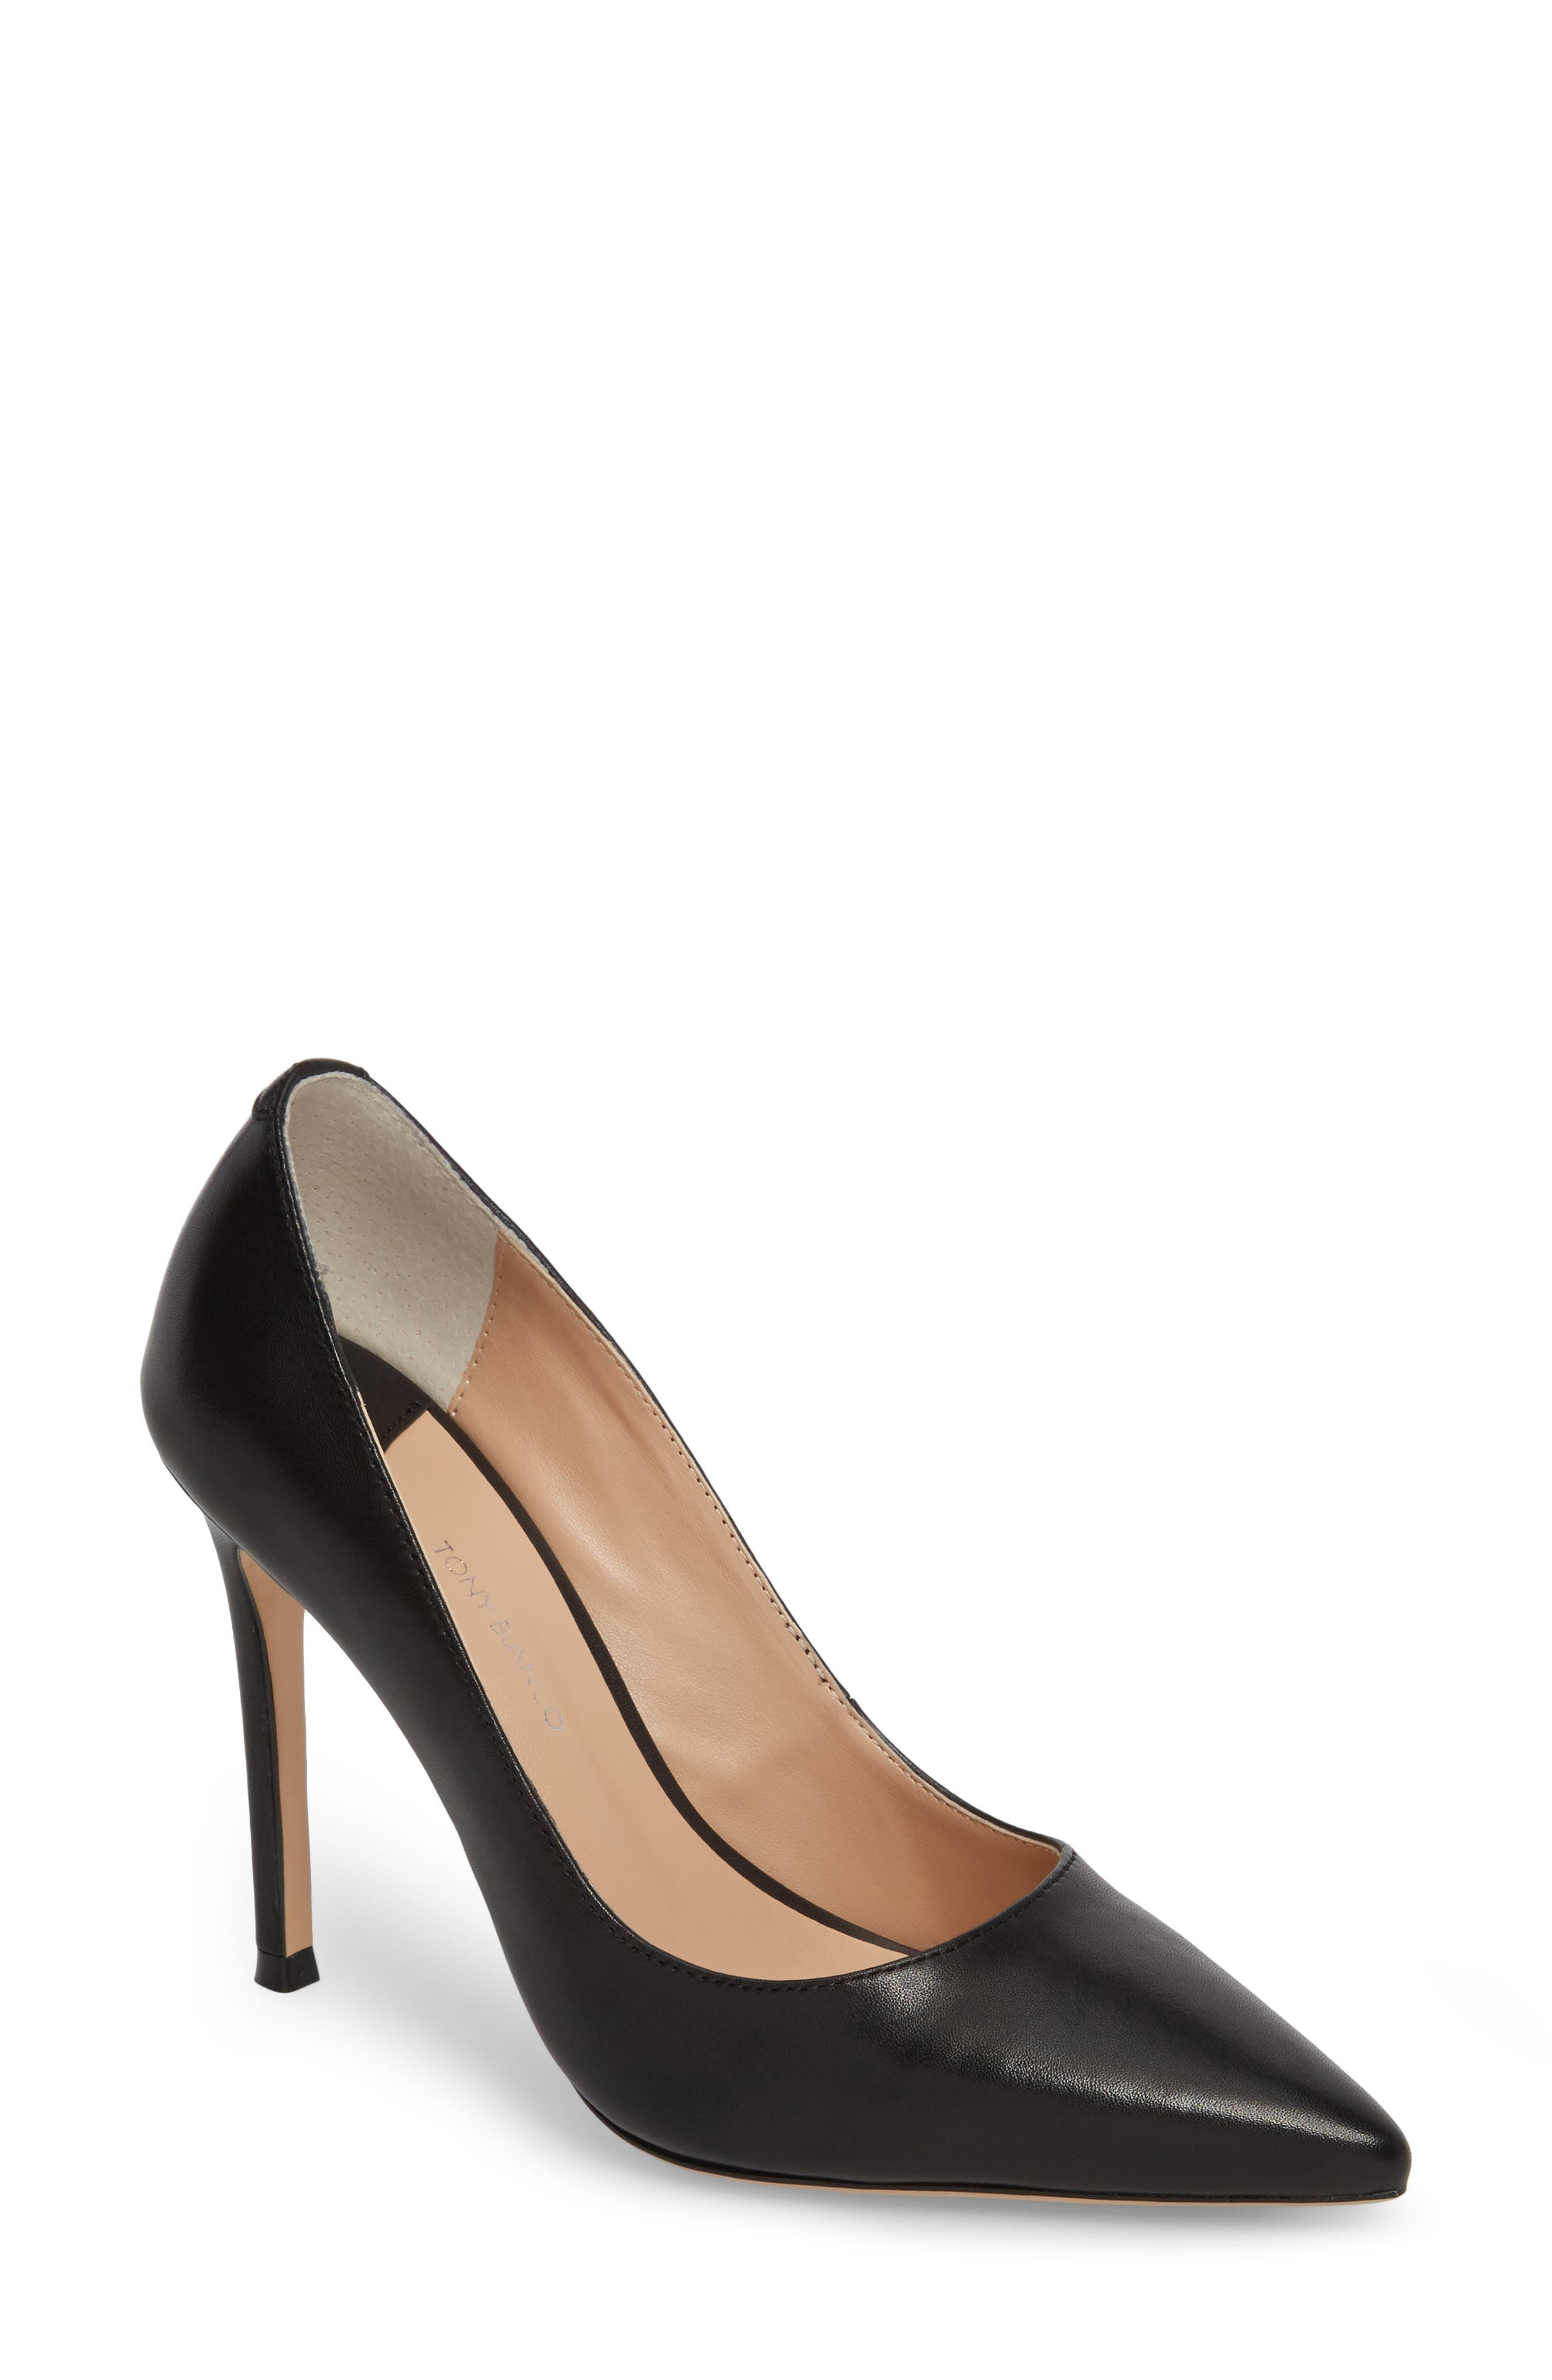 TONY BIANCO Lotus Pointy Toe Pump, Main, color, 001